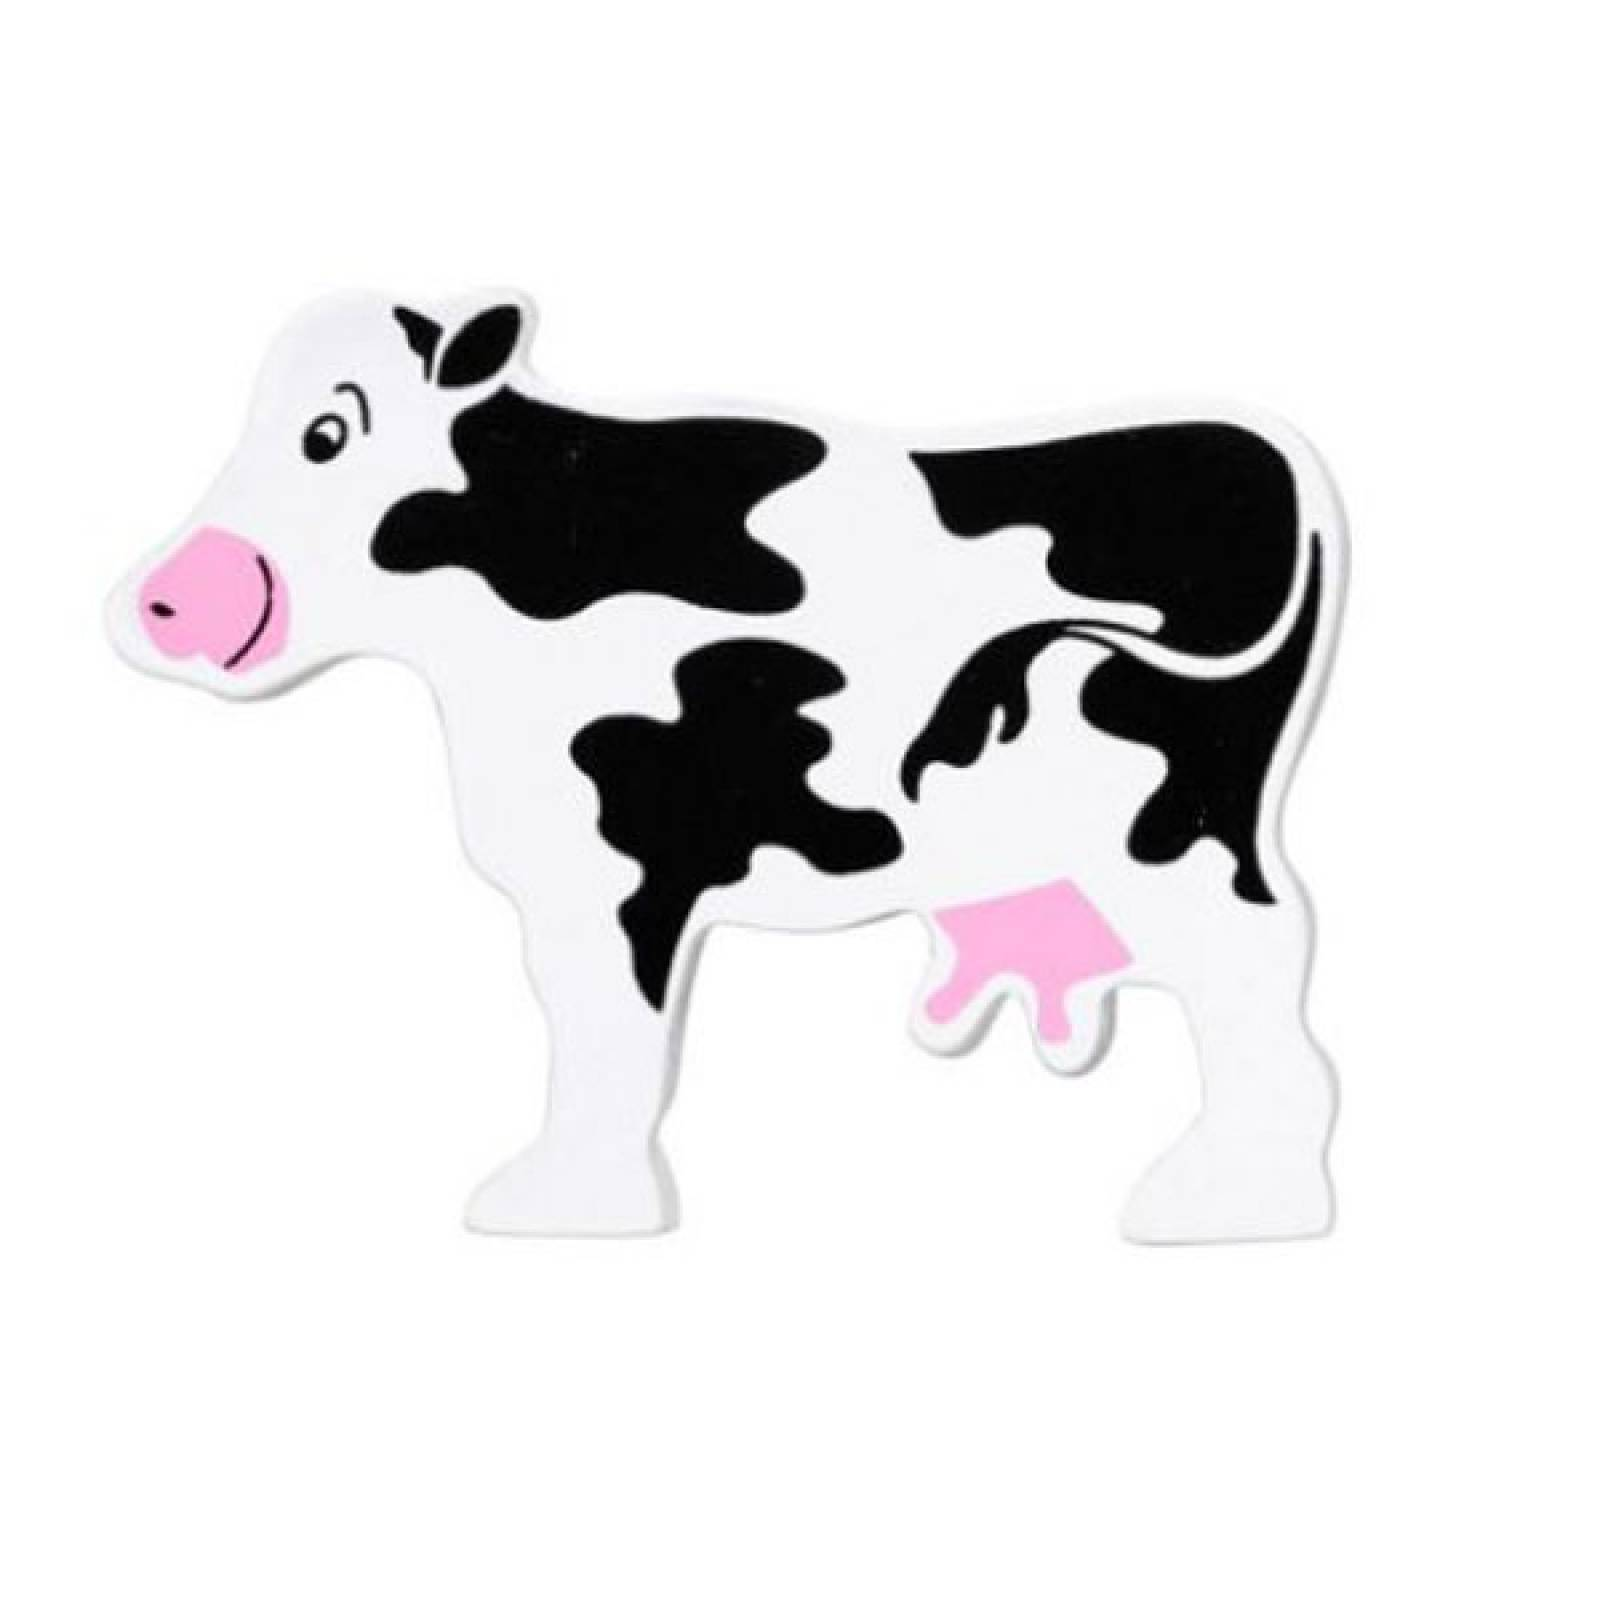 Cow Wooden Painted Animal Fairtrade Lanka Kade